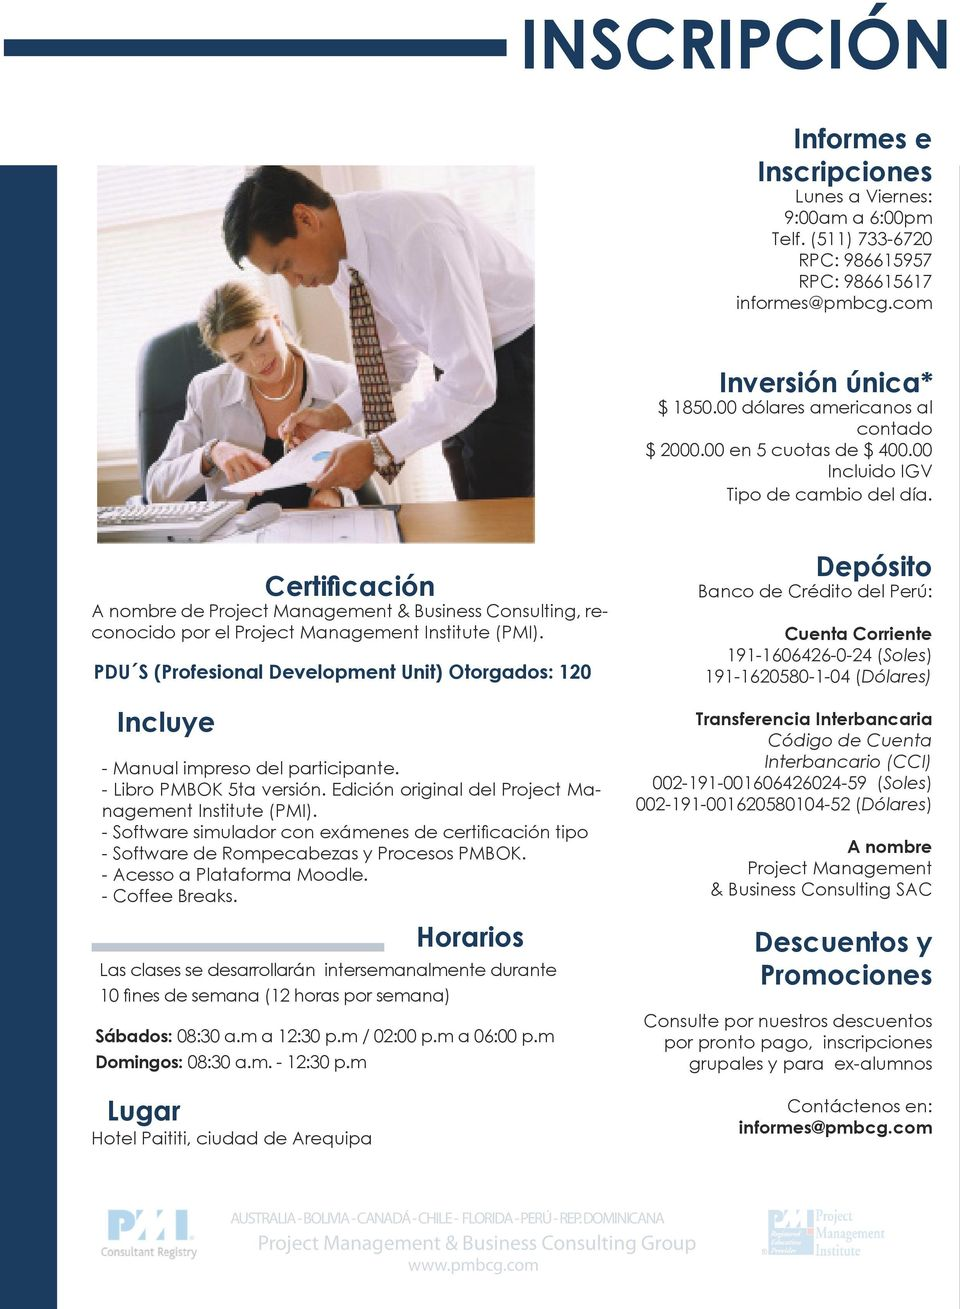 Certificación A nombre de Project Management & Business Consulting, reconocido por el Project Management Institute (PMI).